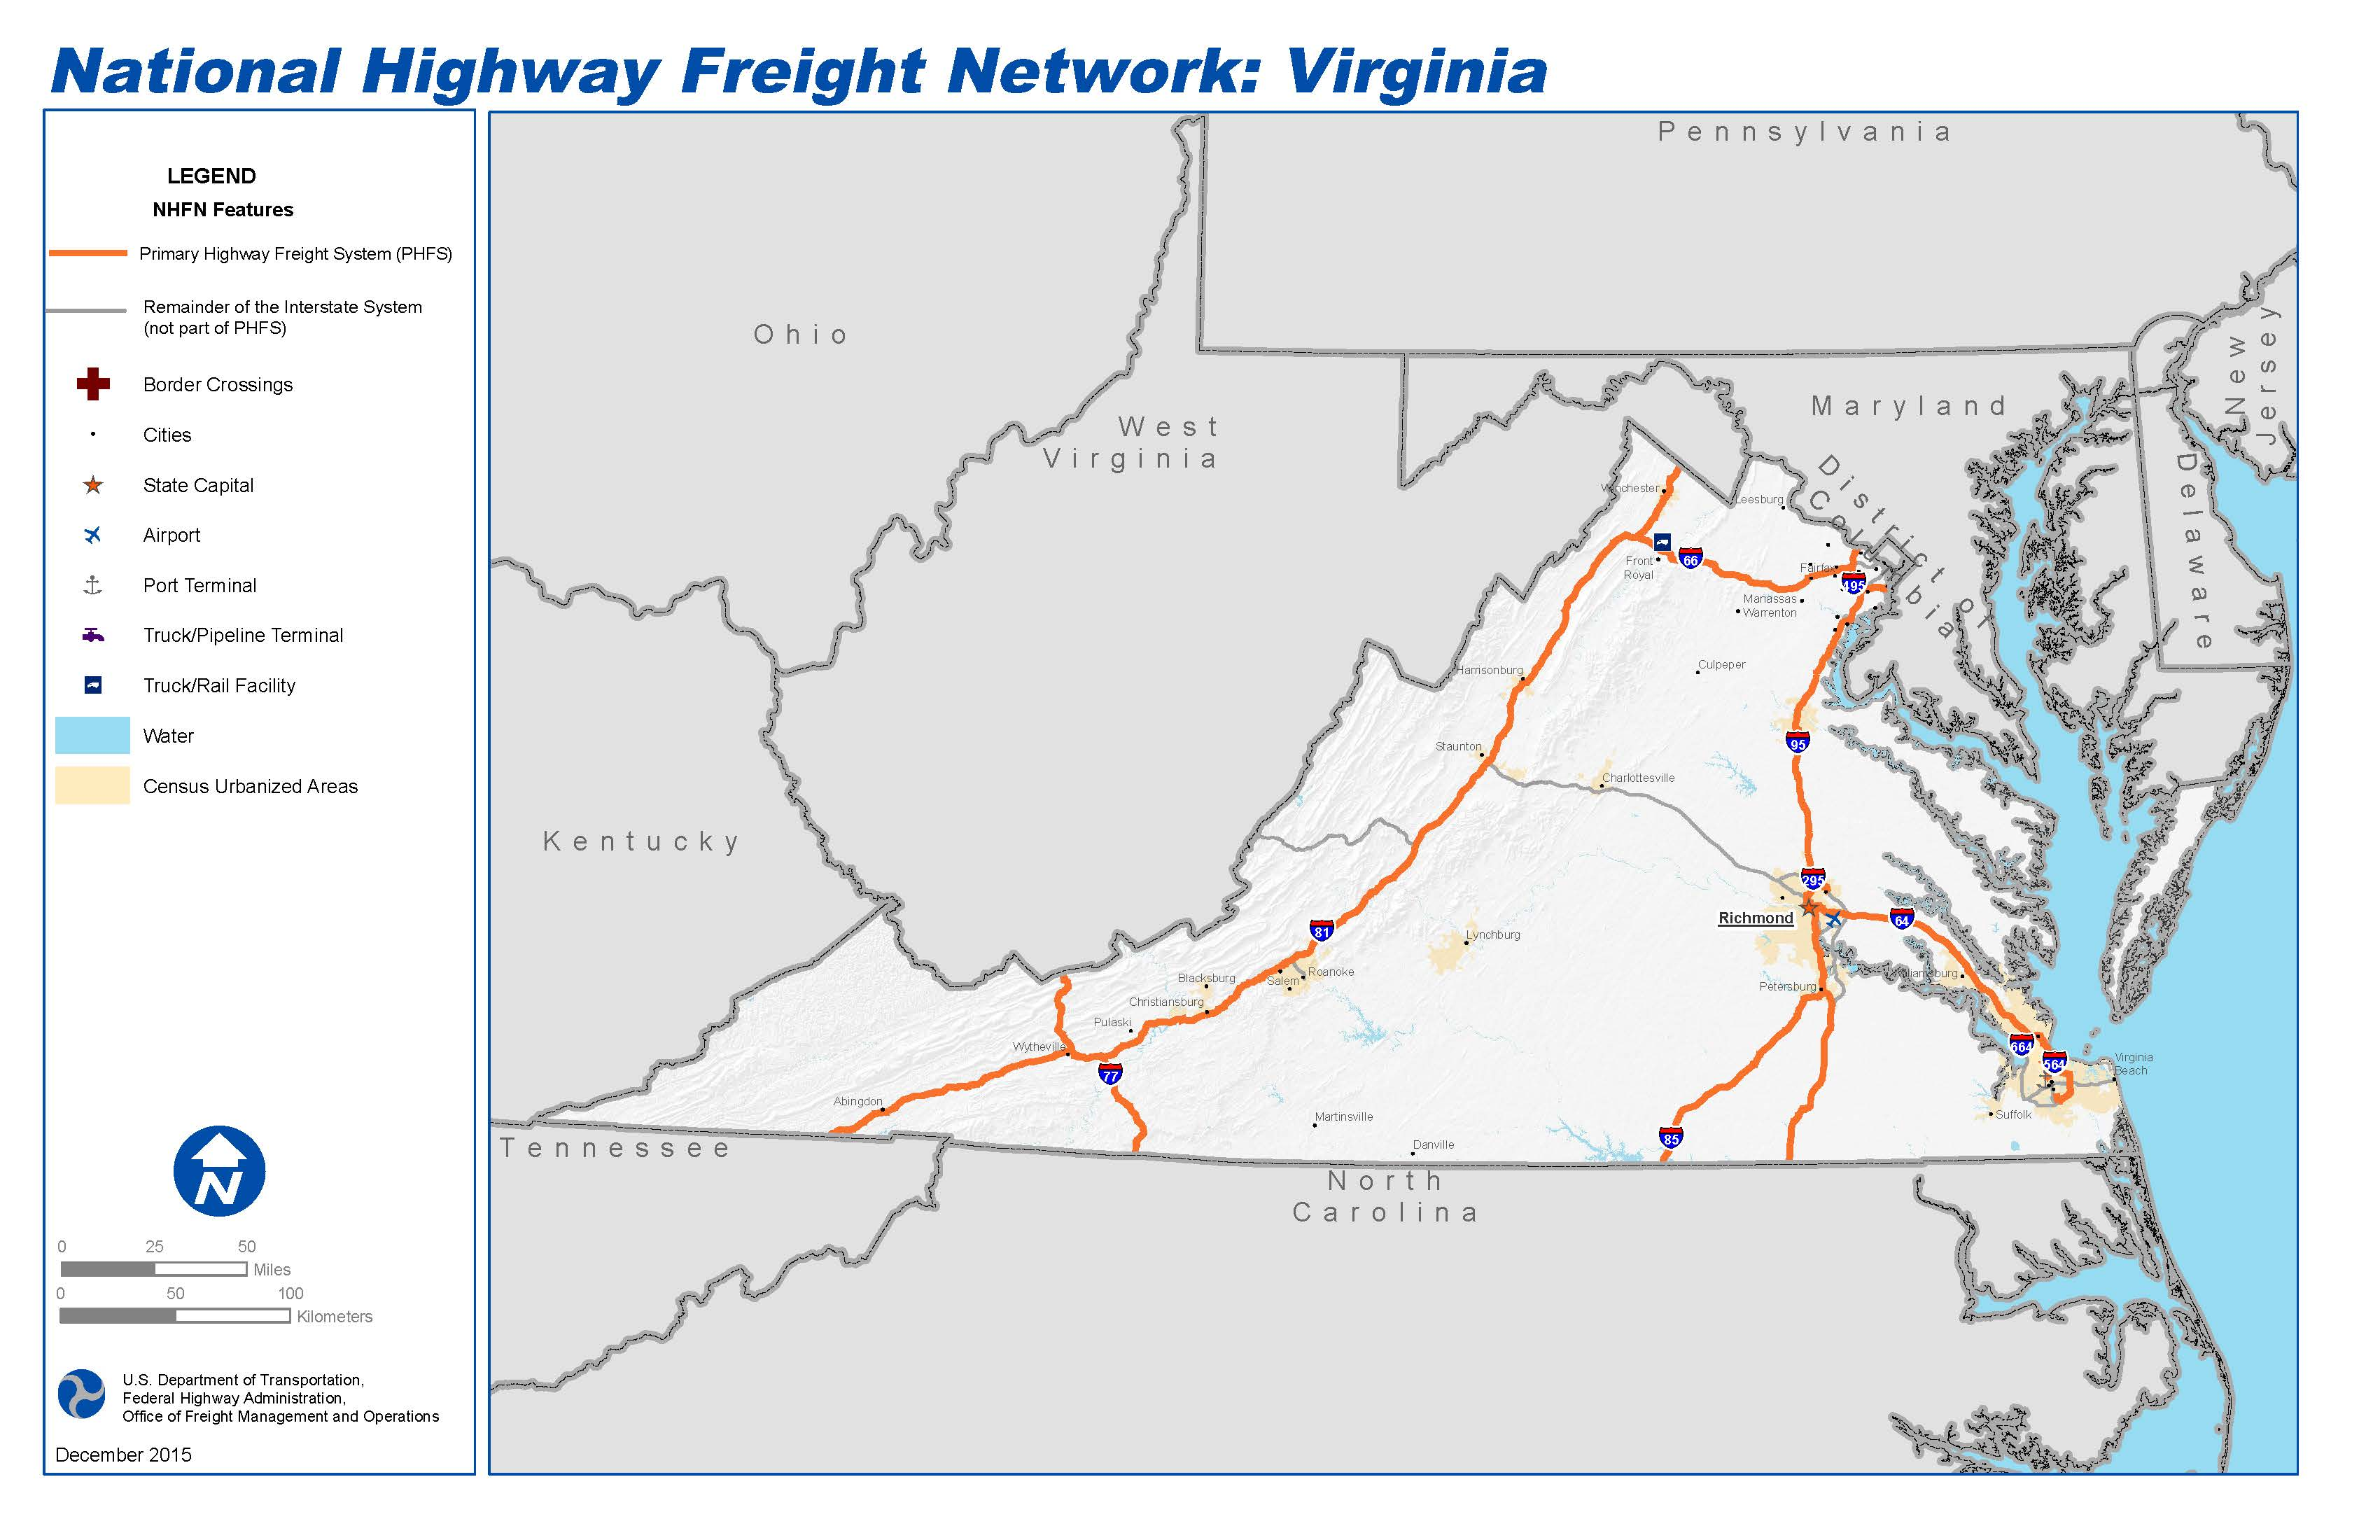 National Highway Freight Network Map and Tables for Virginia - FHWA ...